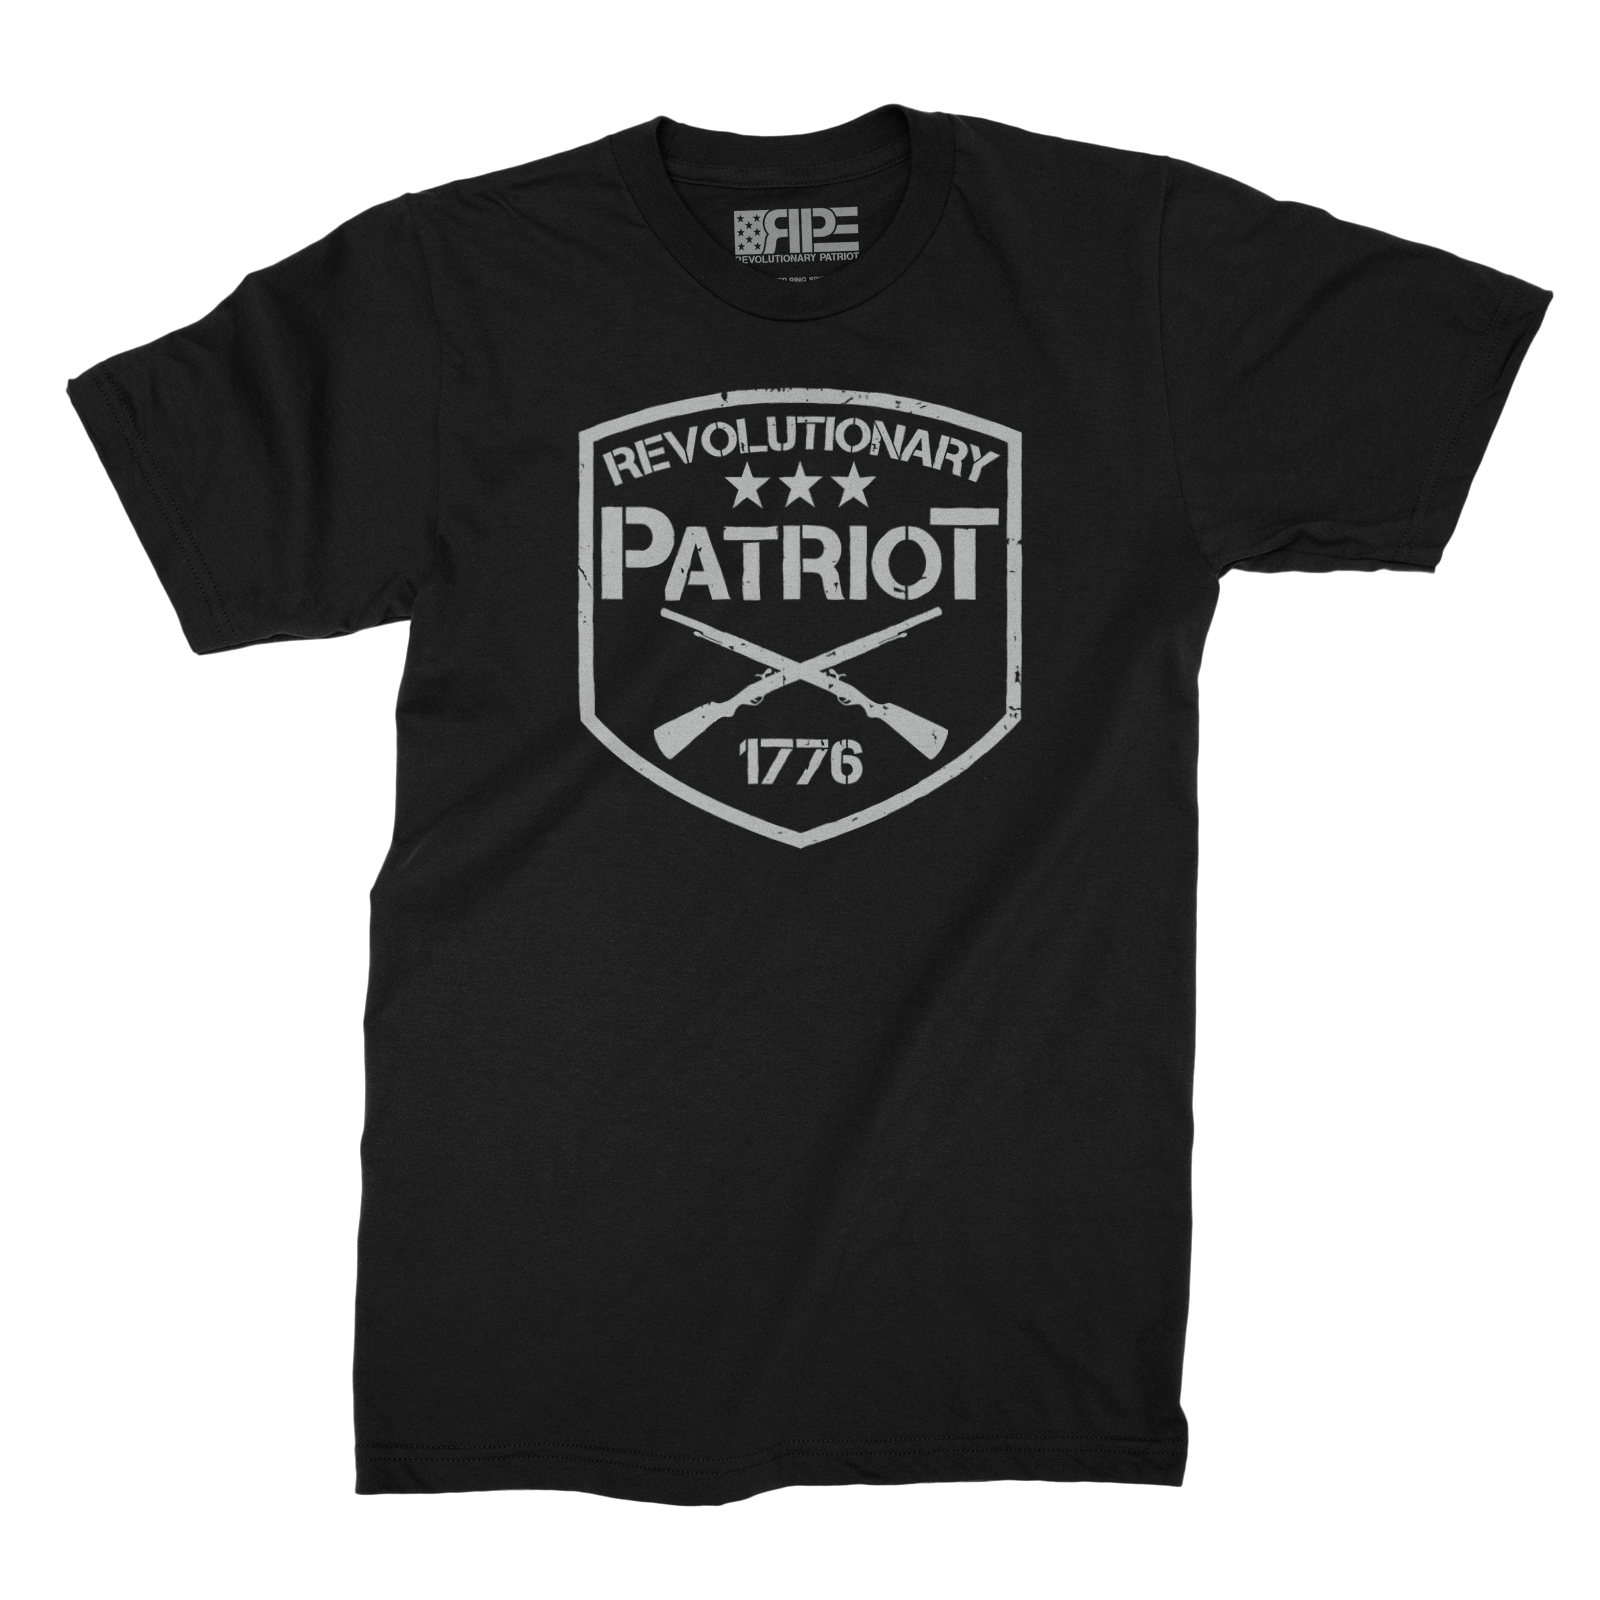 Revolutionary Patriot (Black)